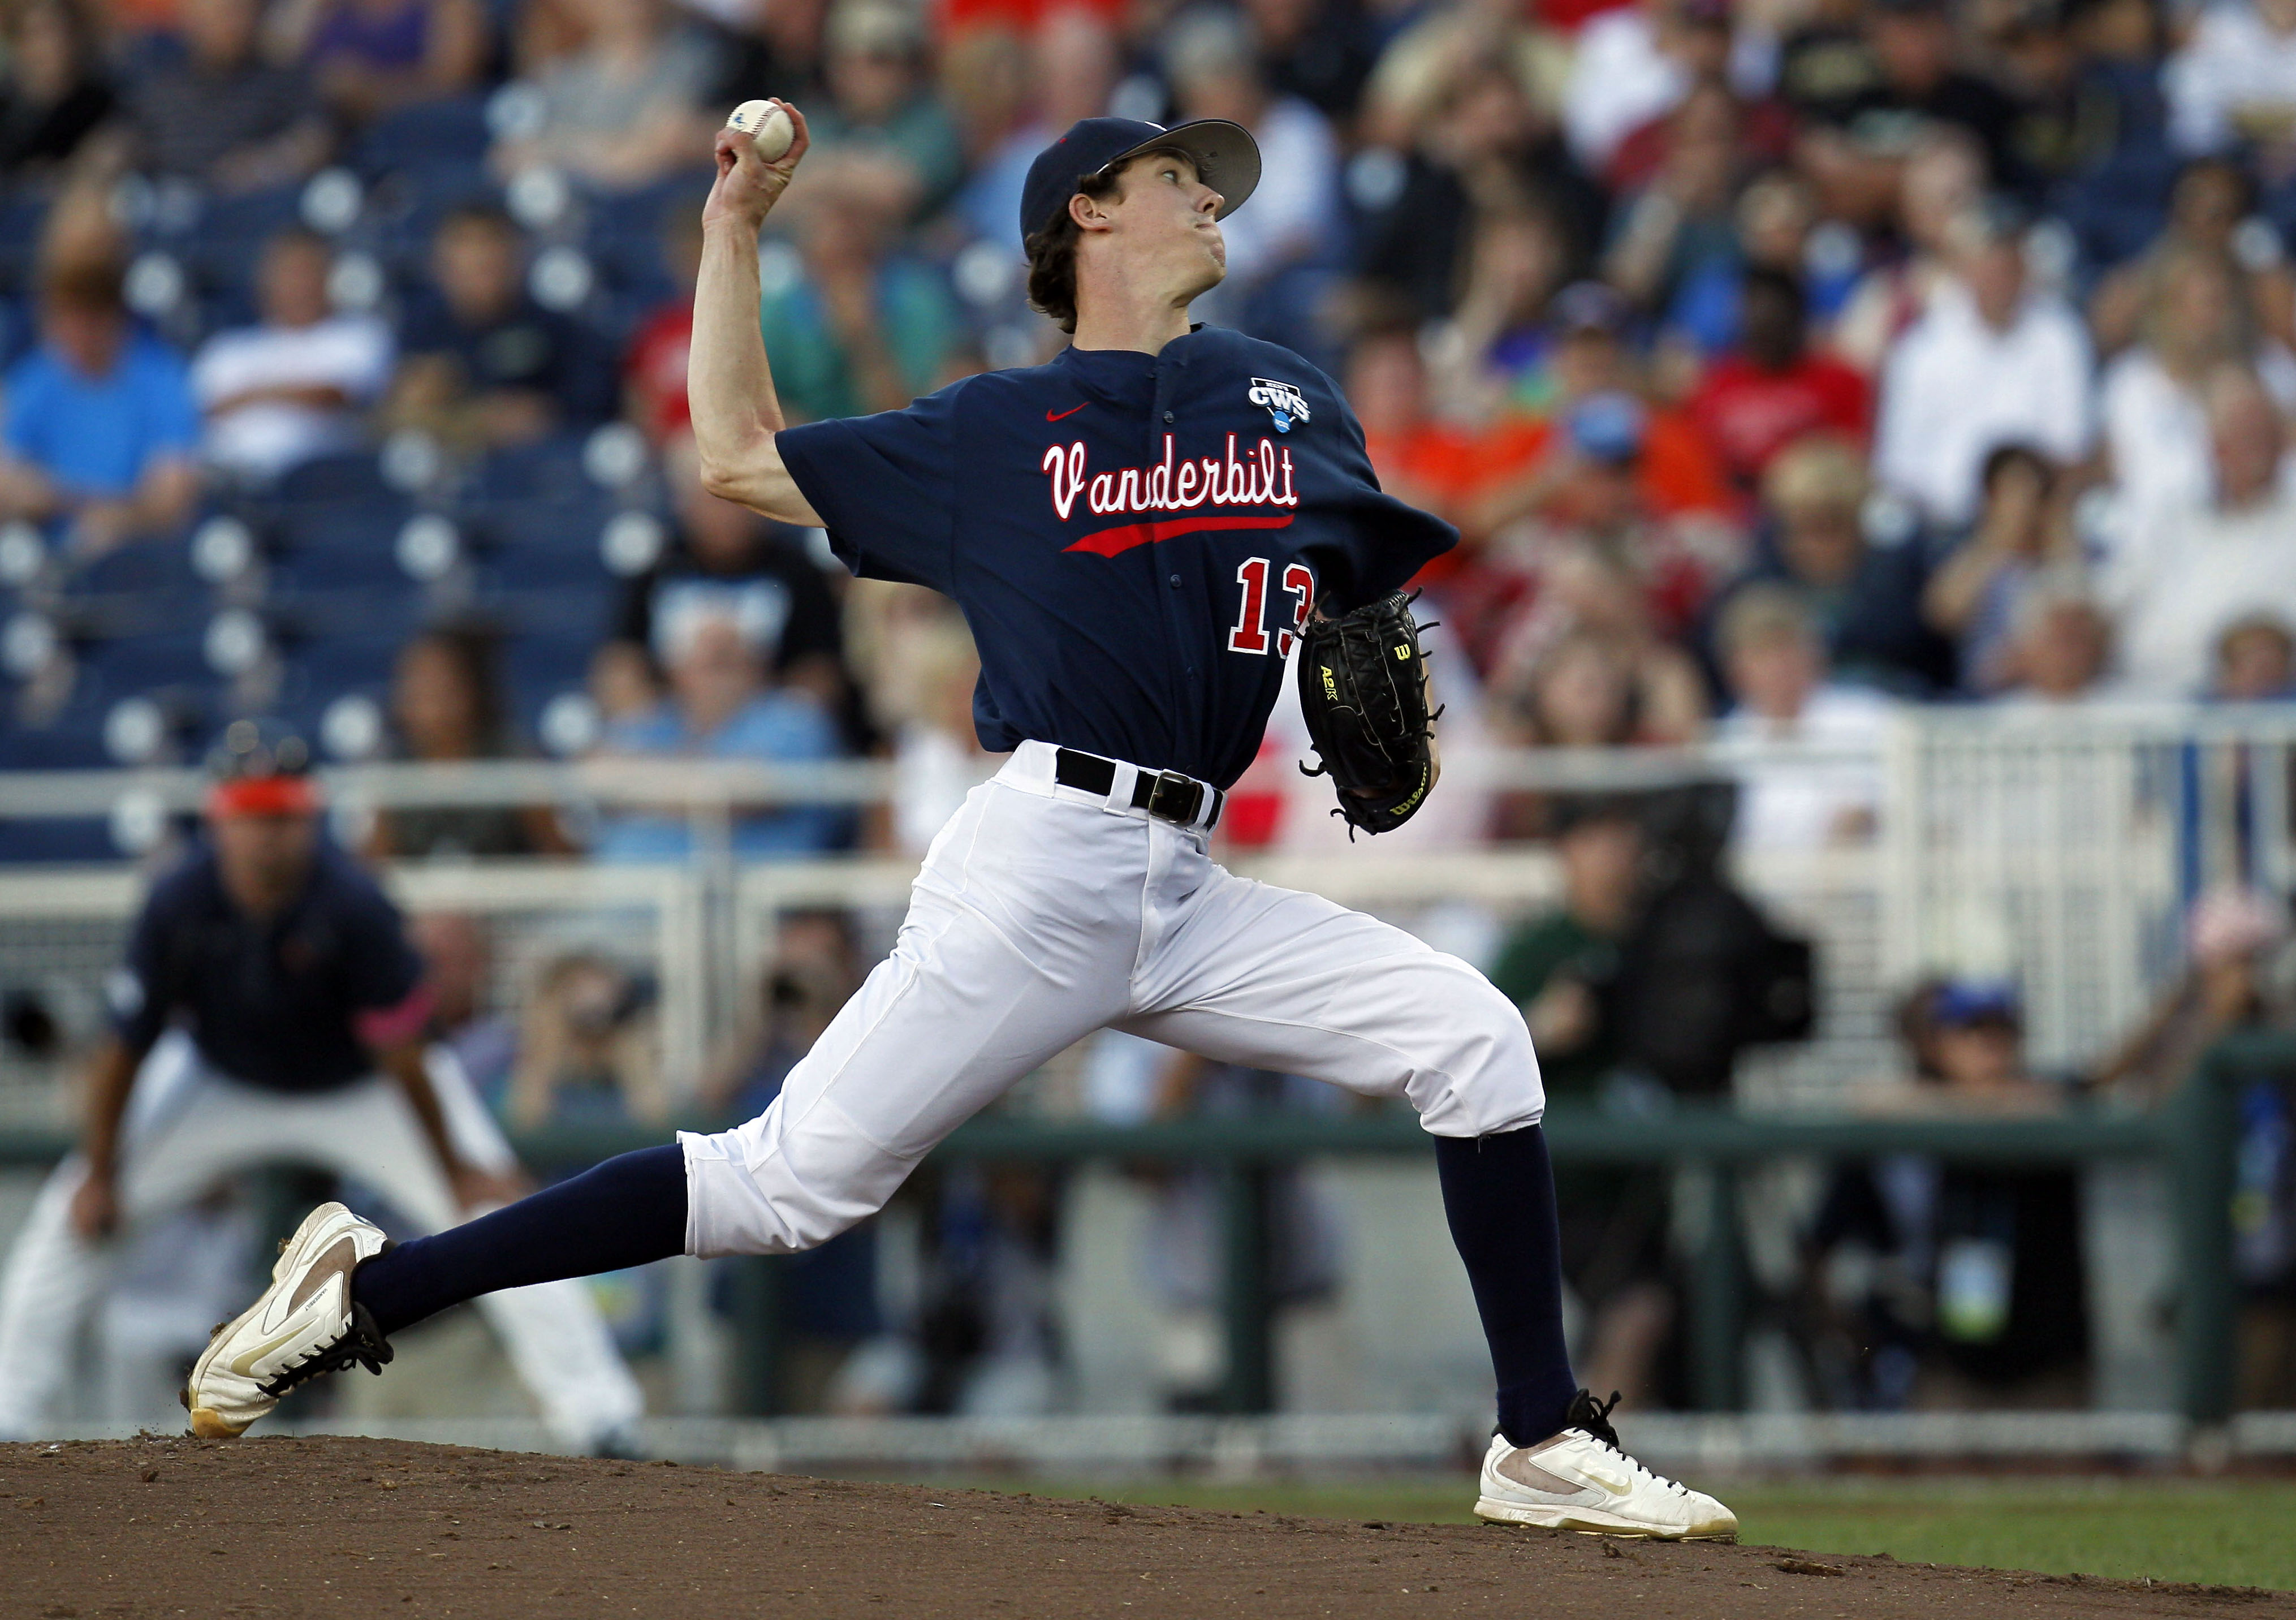 Vanderbilt righty Walker Buehler is reportedly one of the Rays' targets tonight